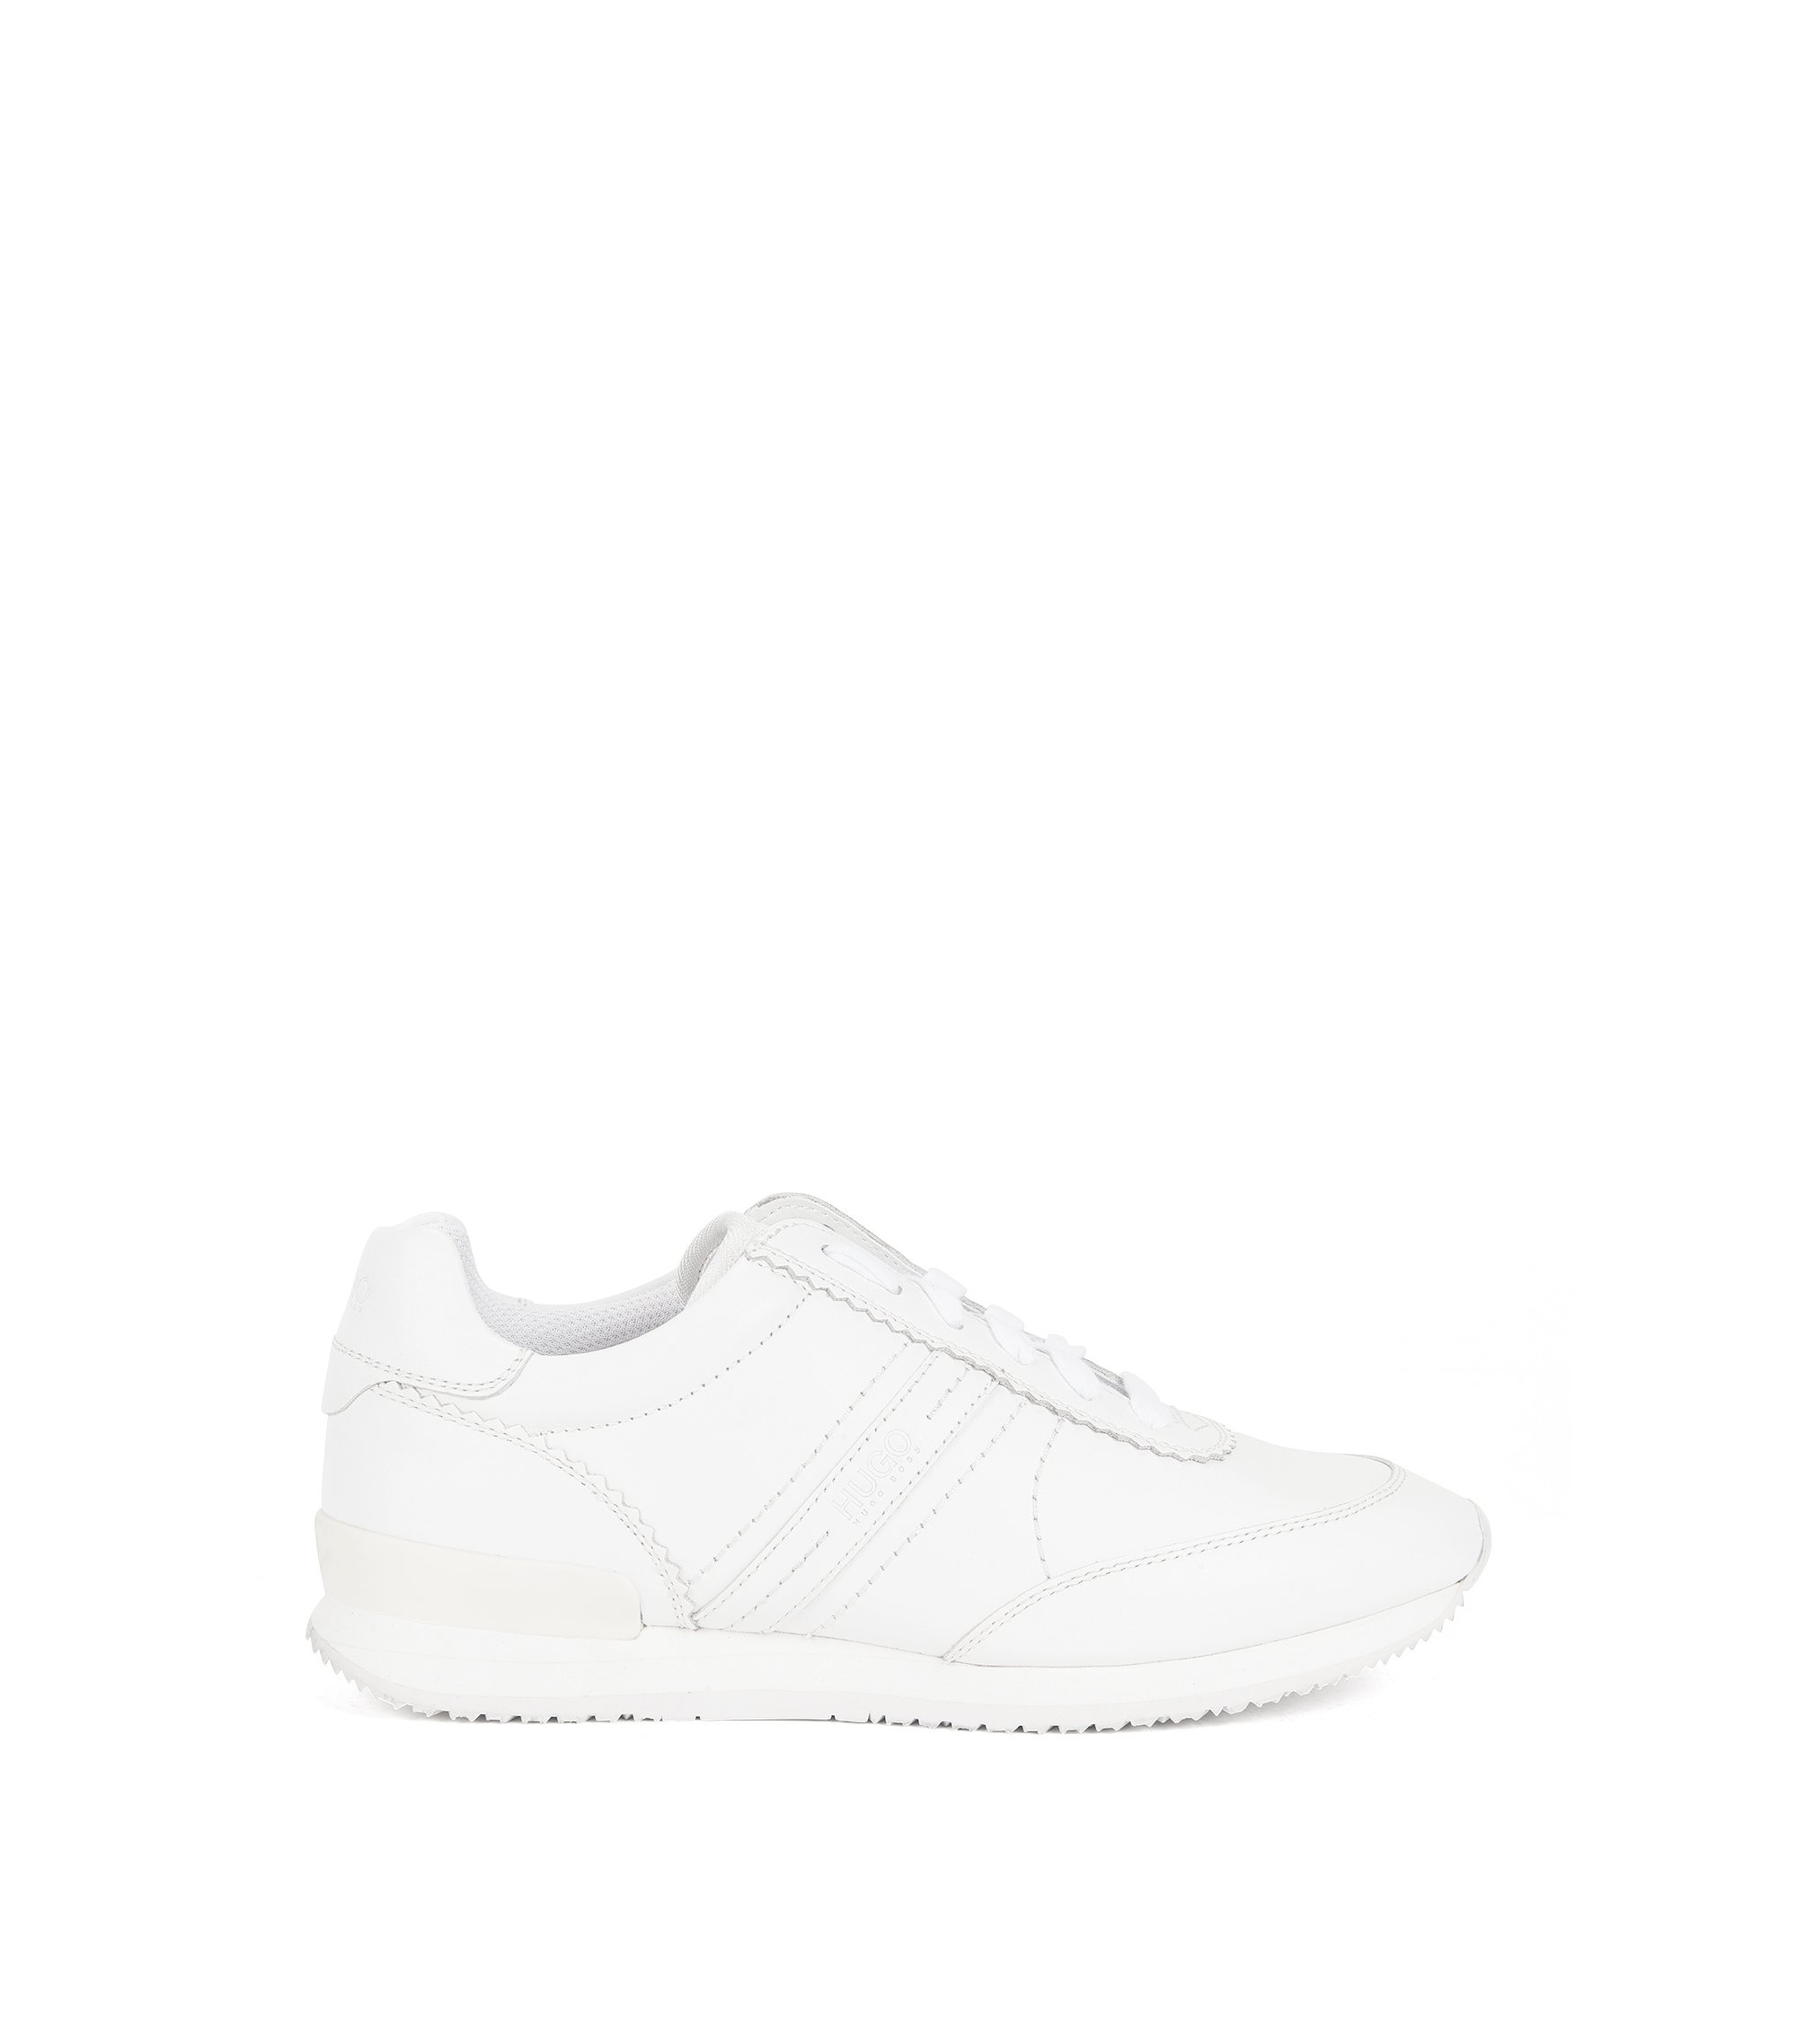 Full-leather trainers with rubber sole, White